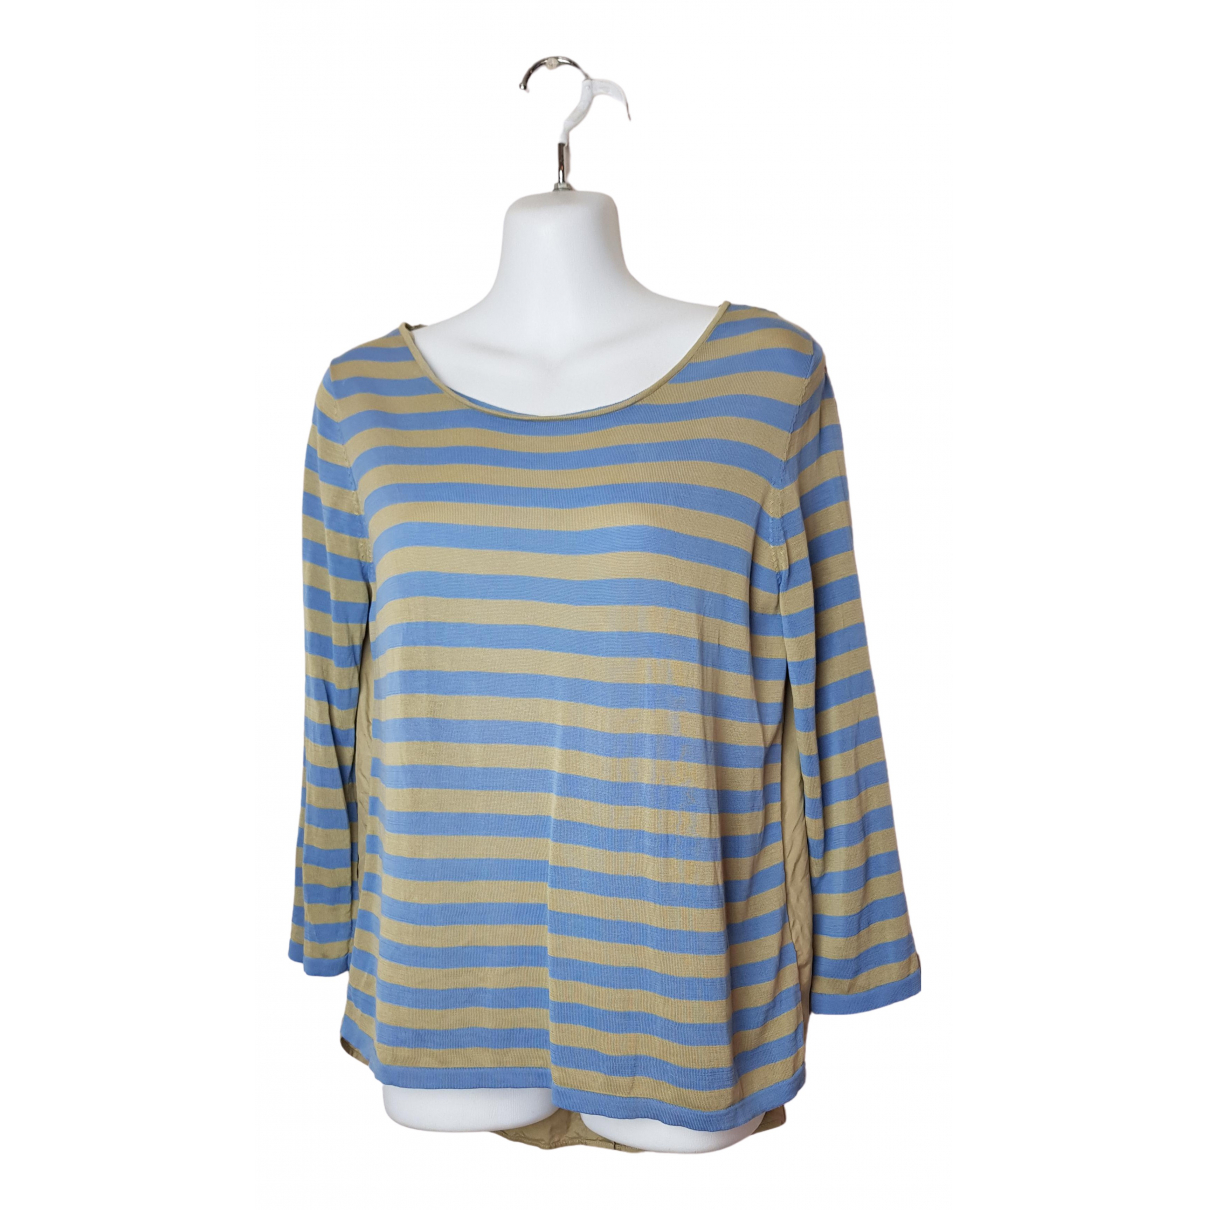 Cos \N Blue Cotton  top for Women S International